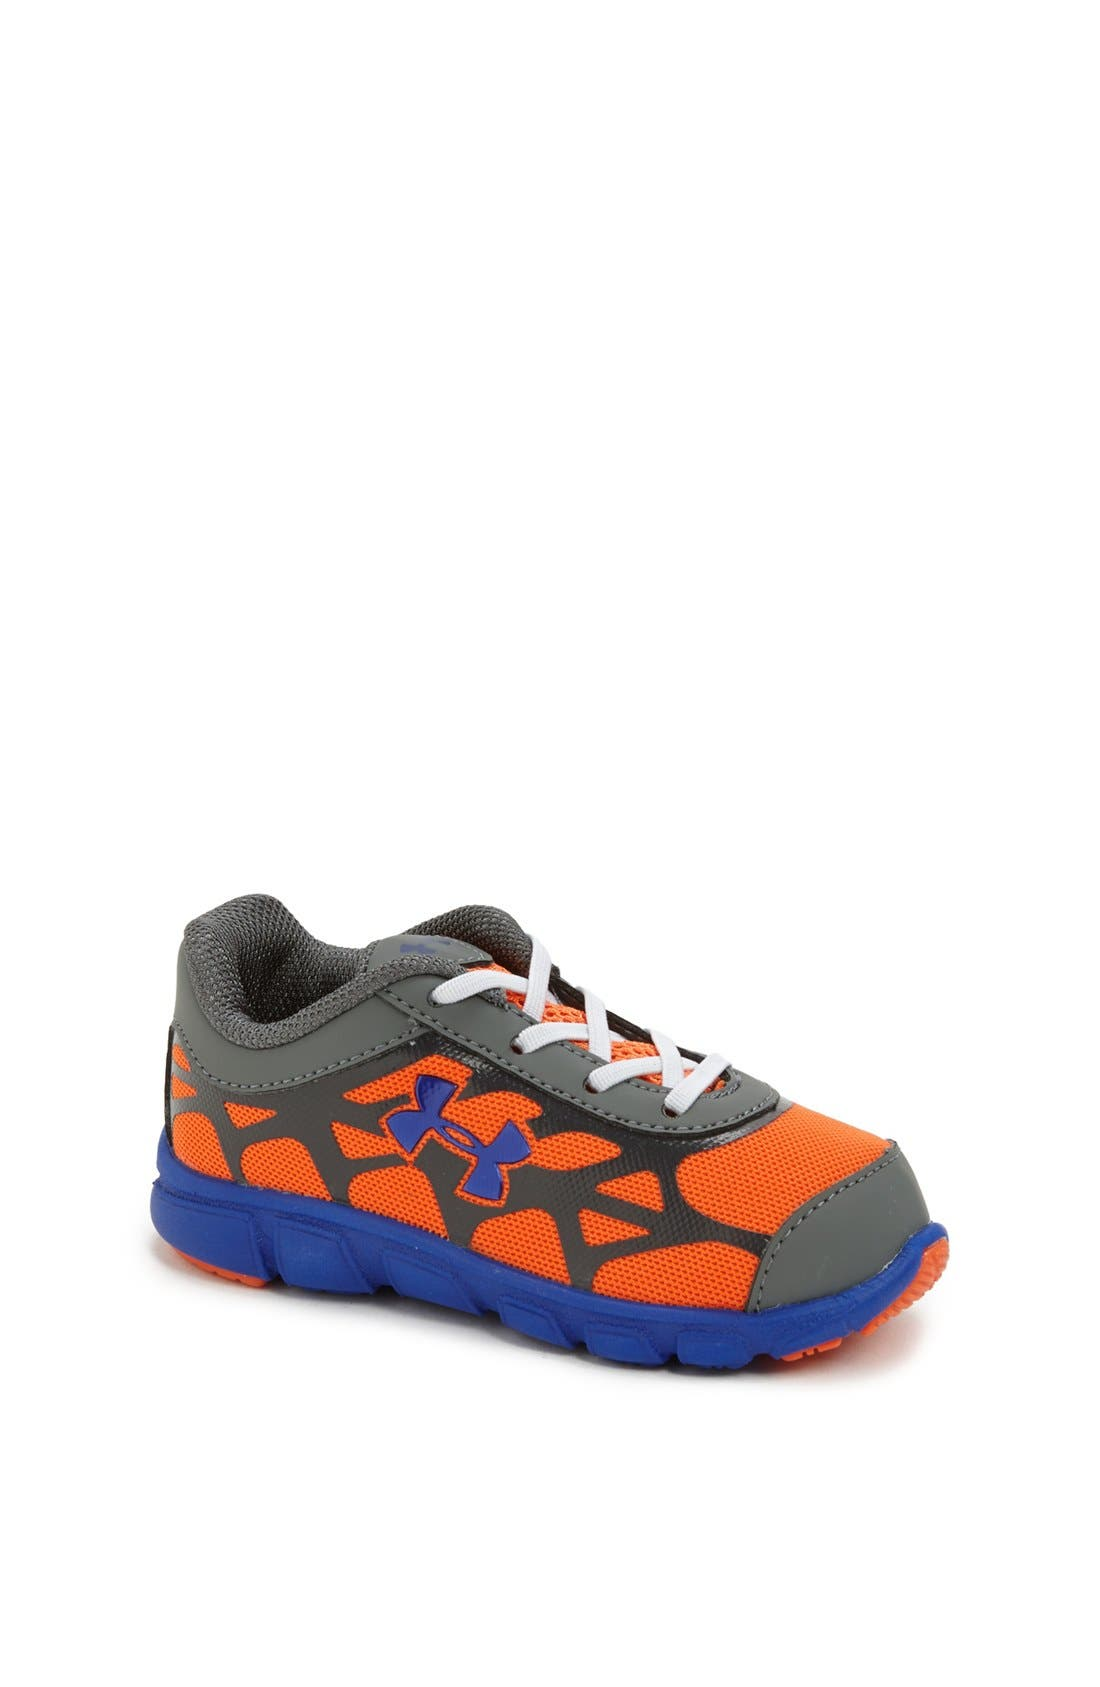 Main Image - Under Armour 'Spine™ Vice' Athletic Shoe (Baby, Walker & Toddler)